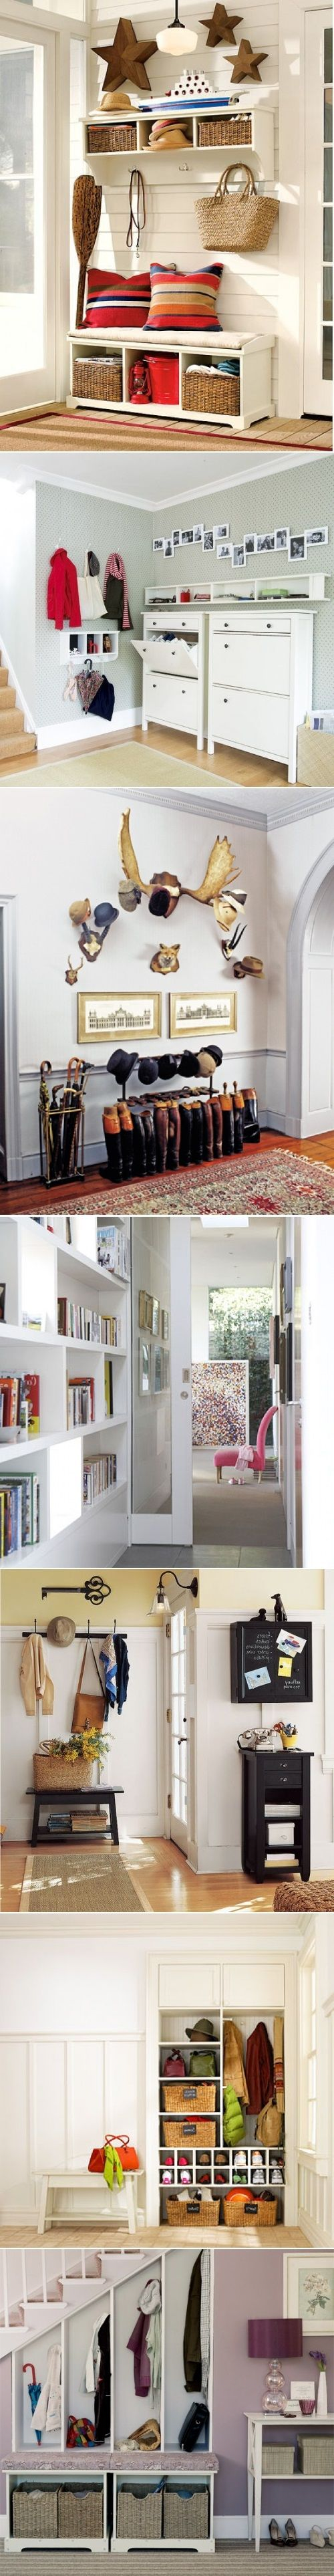 DIY Mudroom And Hallway Storage Ideas NOTE: Carrie that top Ikea shoe one would work good on your living room wall by other door(against bedroom closet wall) because it is very thin but it would hold a lot of shoes or movies or whatever :)